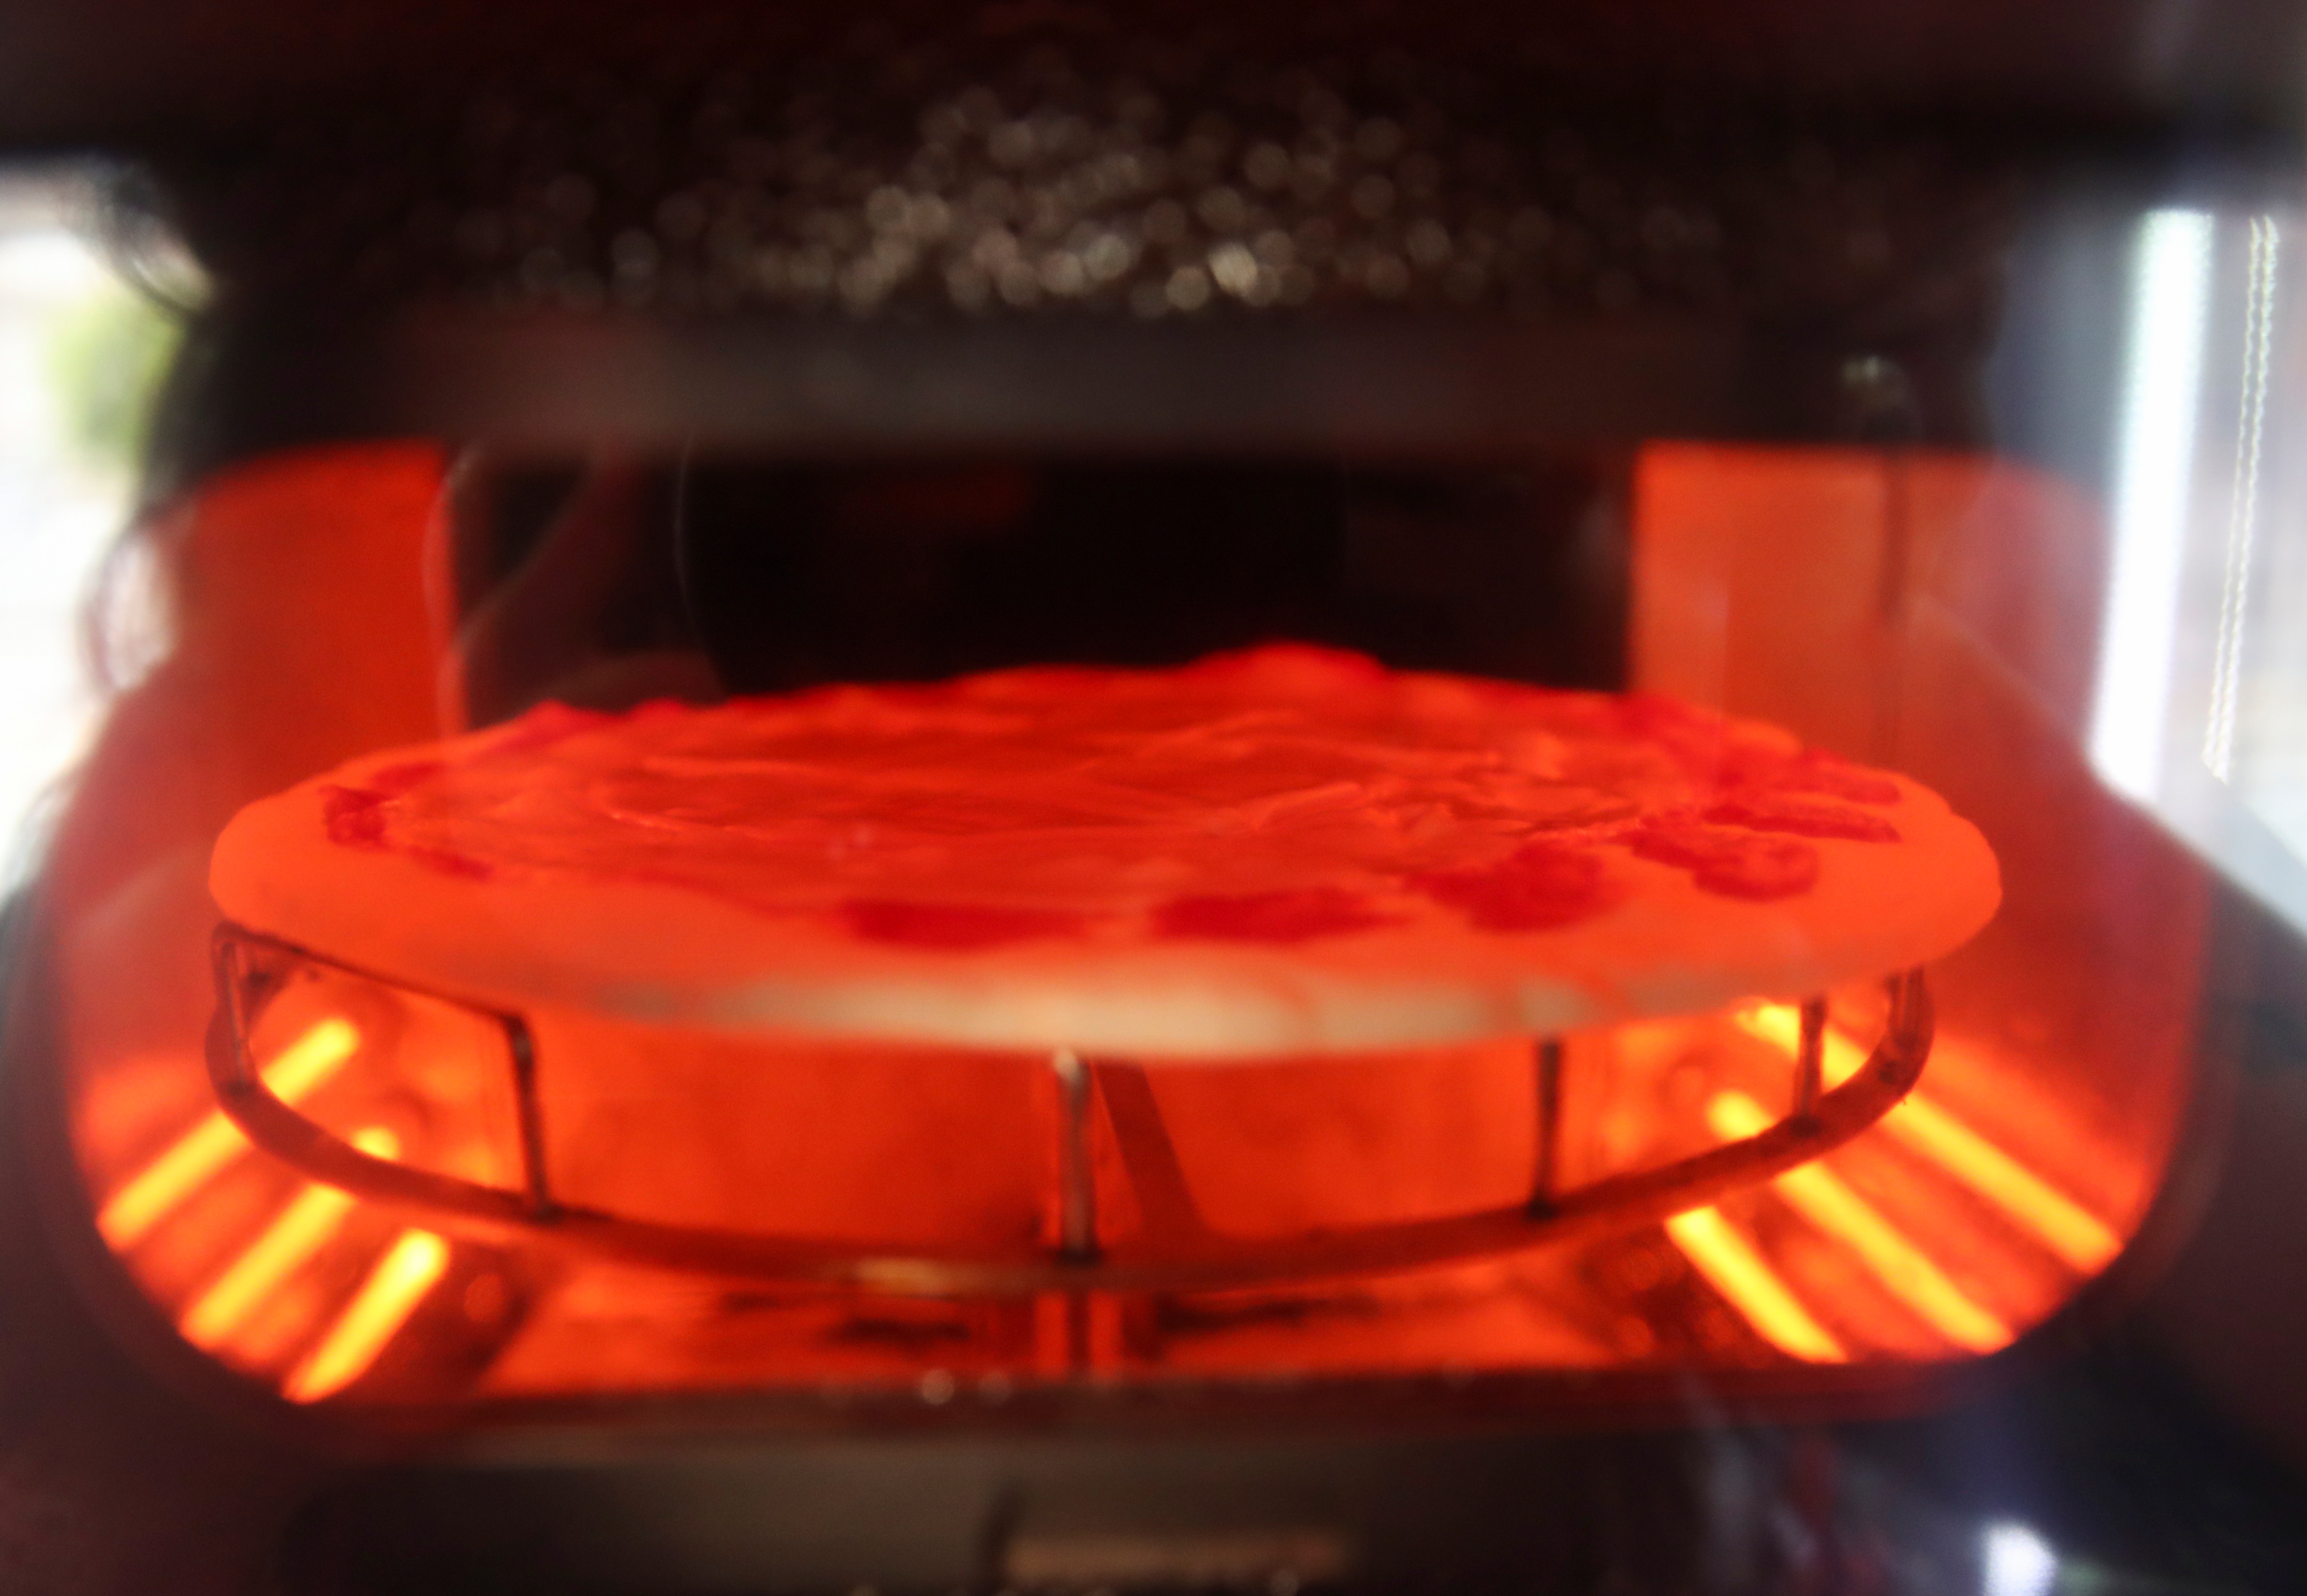 A pizza being baked is seen in the first automatic pizza vending machine, which is capable of kneading, seasoning and cooking the pizza in three minutes, in Rome, Italy, May 6, 2021. REUTERS/Yara Nardi